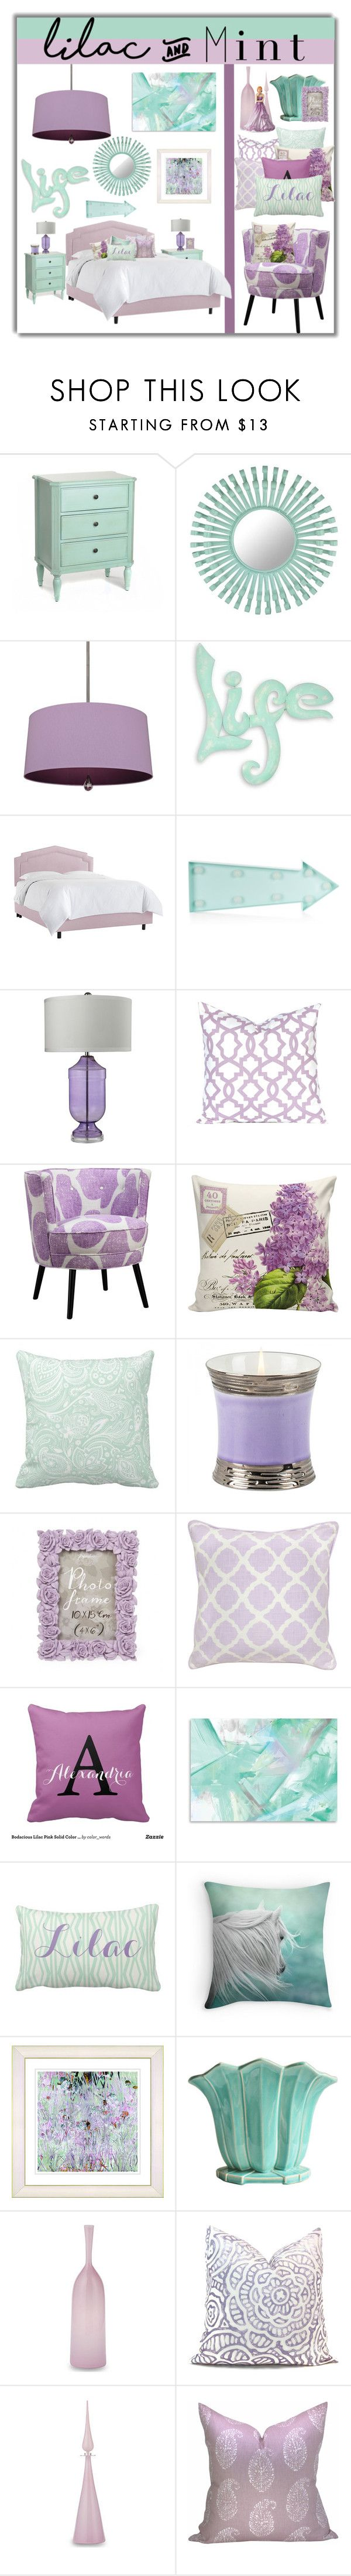 """Lilac and Mint"" by joyce-williams ❤ liked on Polyvore featuring interior, interiors, interior design, home, home decor, interior decorating, Florence Broadhurst, Williamsburg, NOVICA and New Look"